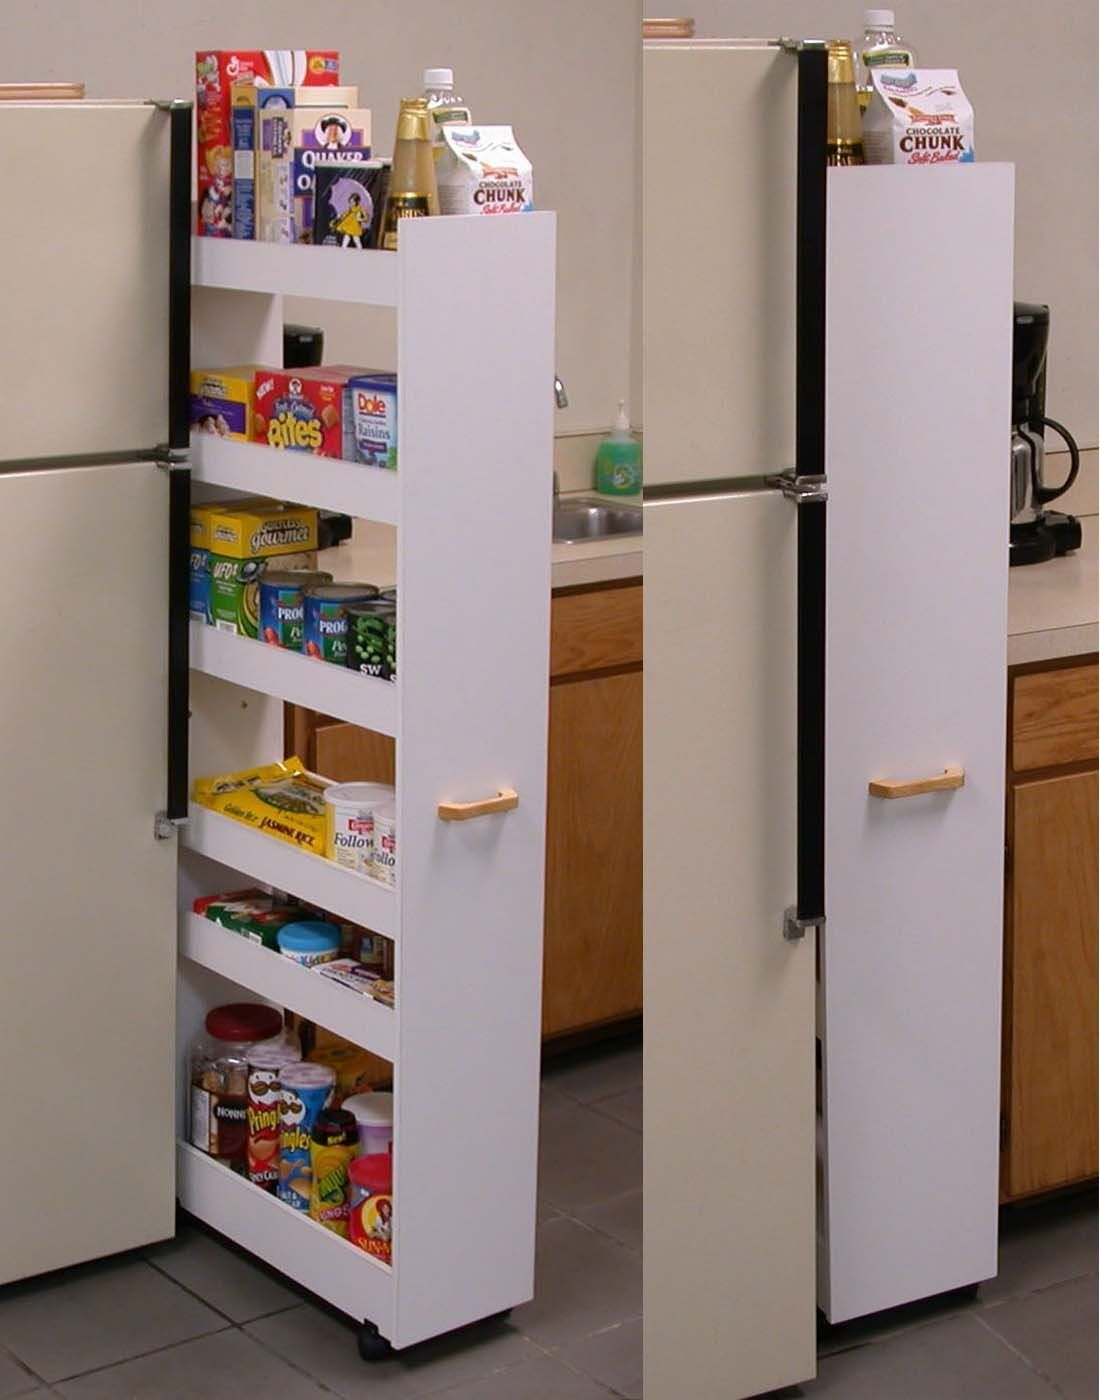 Bon Amazon.com   Thin Pull Out Pantry/Laundry Cabinet [Kitchen] # 4036 11WH   Cabinet  Pull Out Organizers